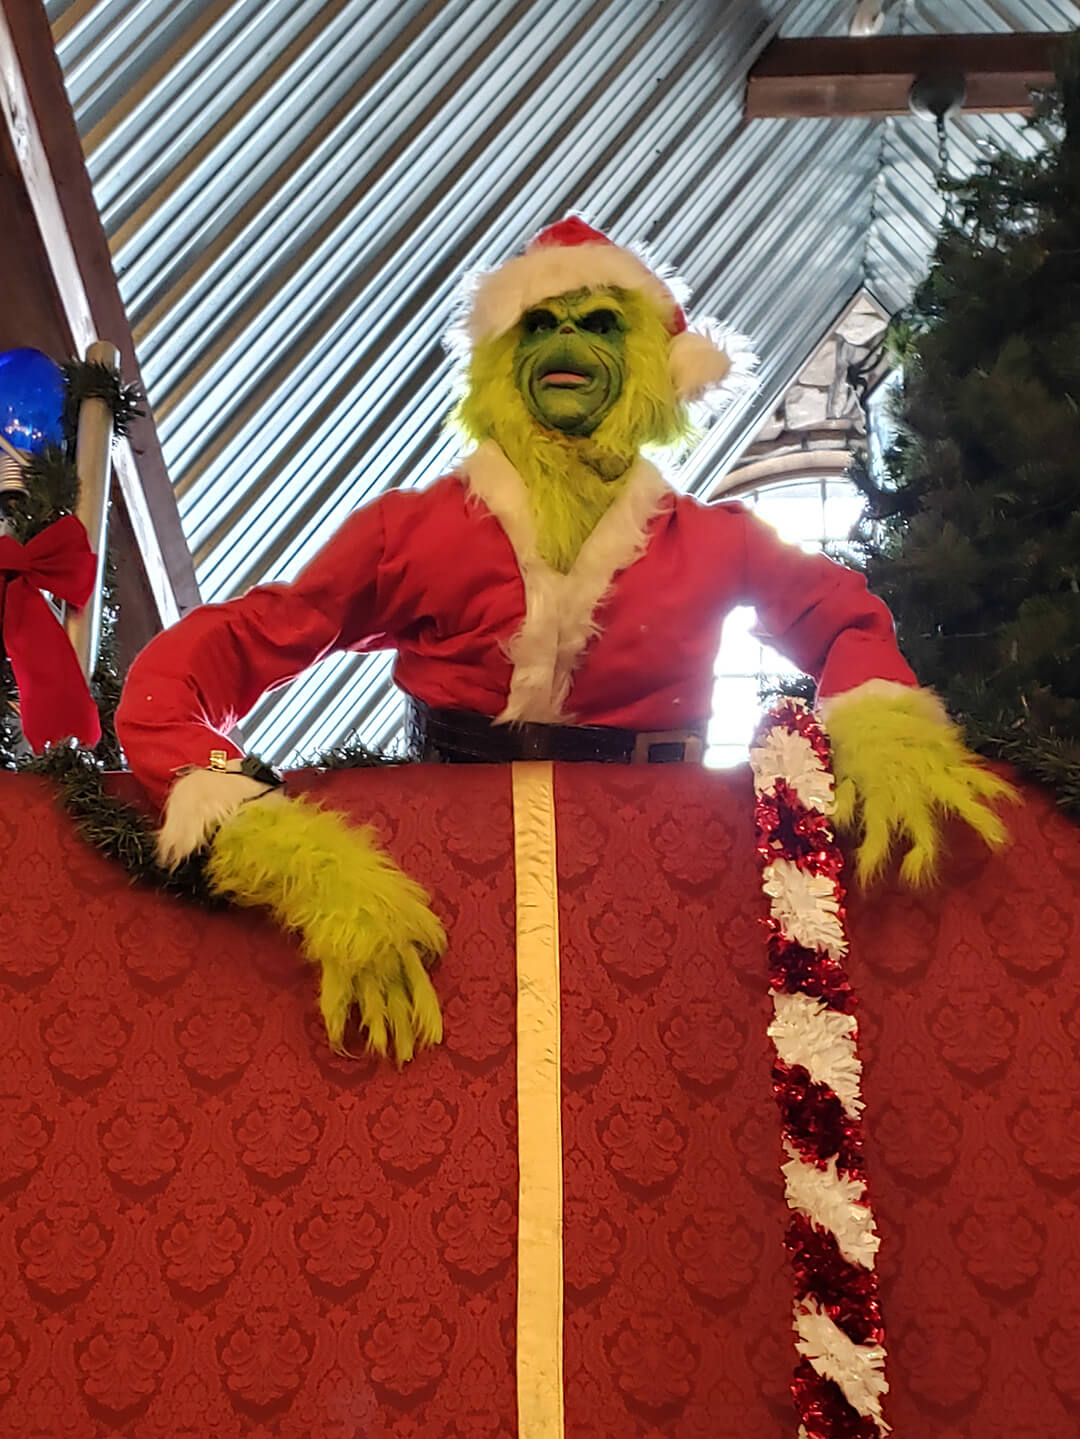 A life-sized figure of the Grinch, dressed as Santa, scowling and leaning over a balcony